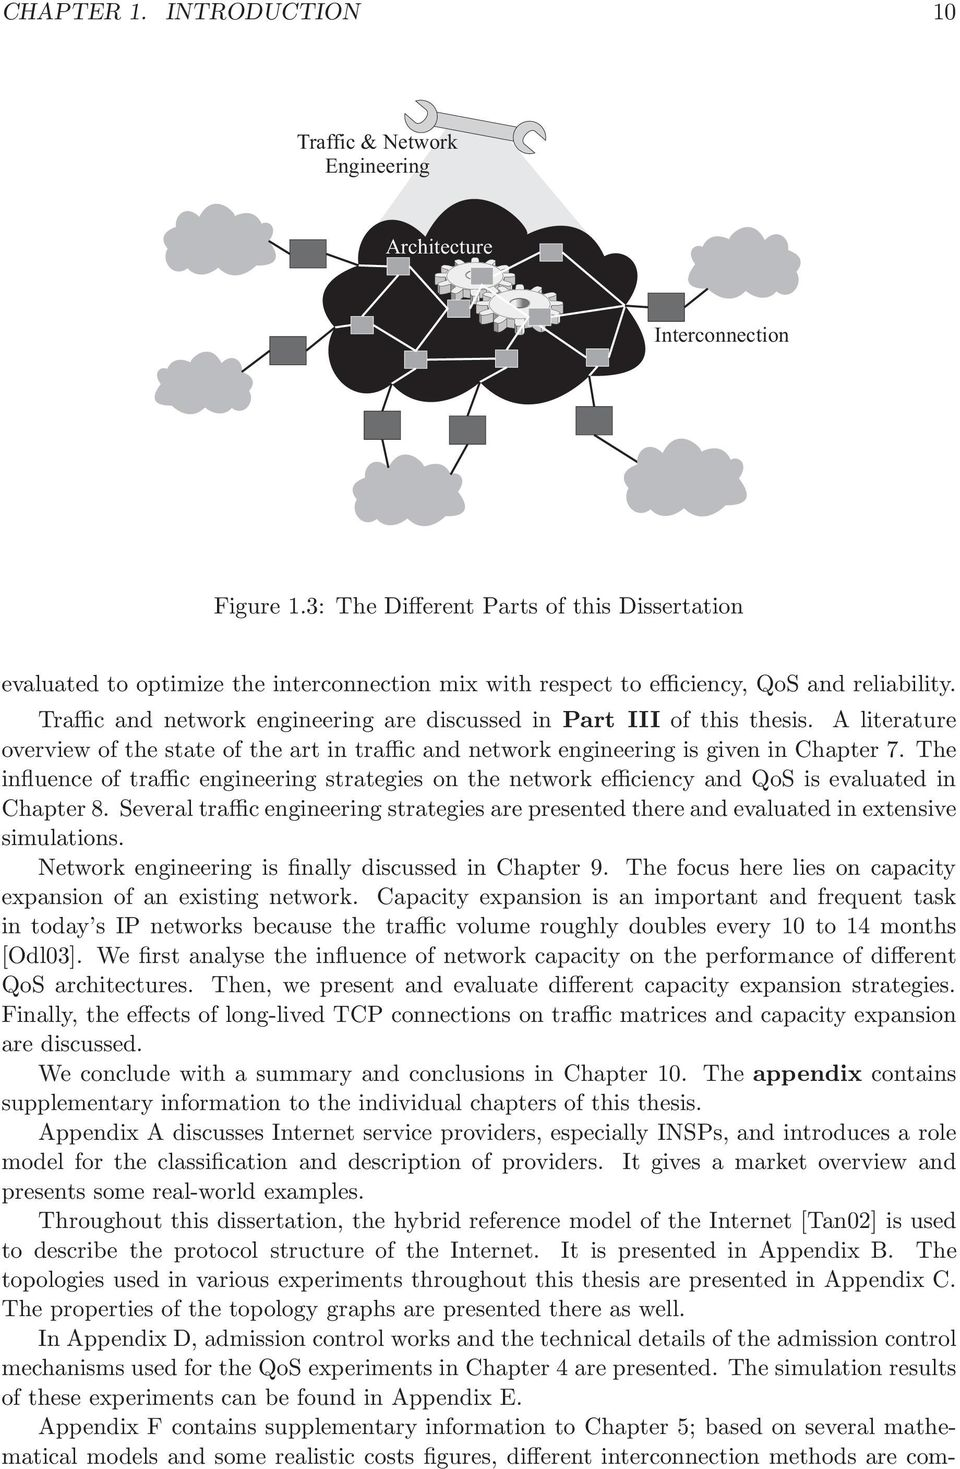 Traffic and network engineering are discussed in Part III of this thesis. A literature overview of the state of the art in traffic and network engineering is given in Chapter 7.